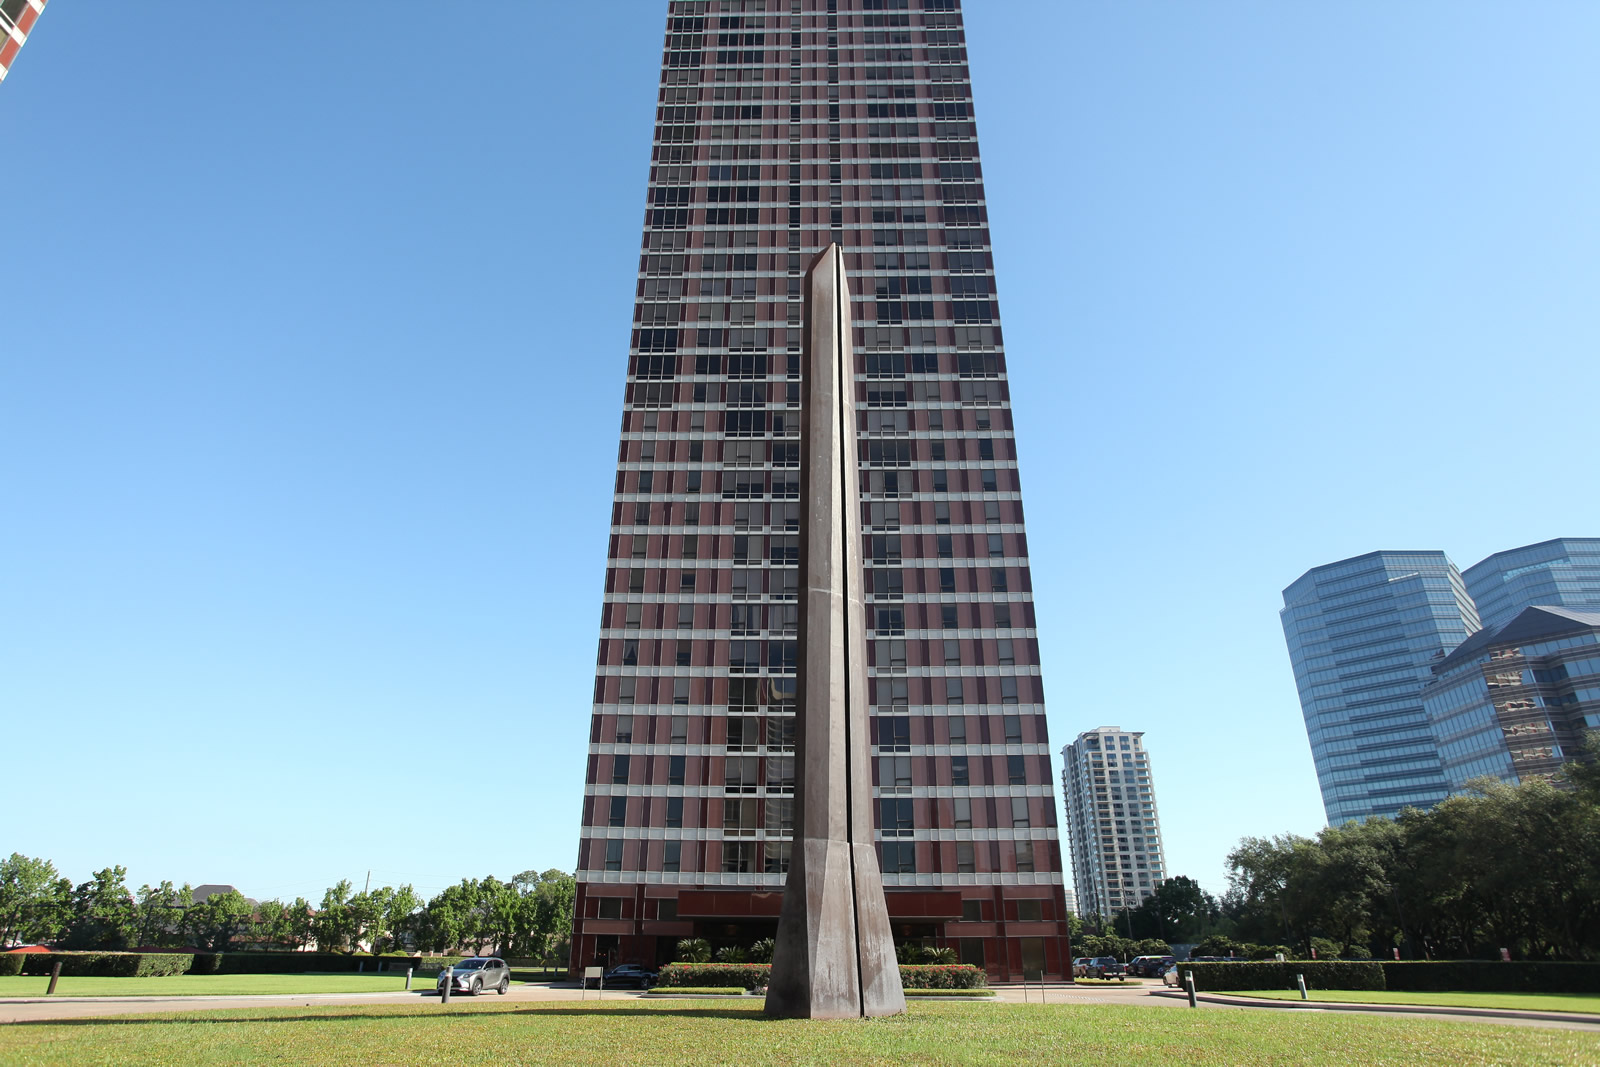 high-rise tower with metal sculpture